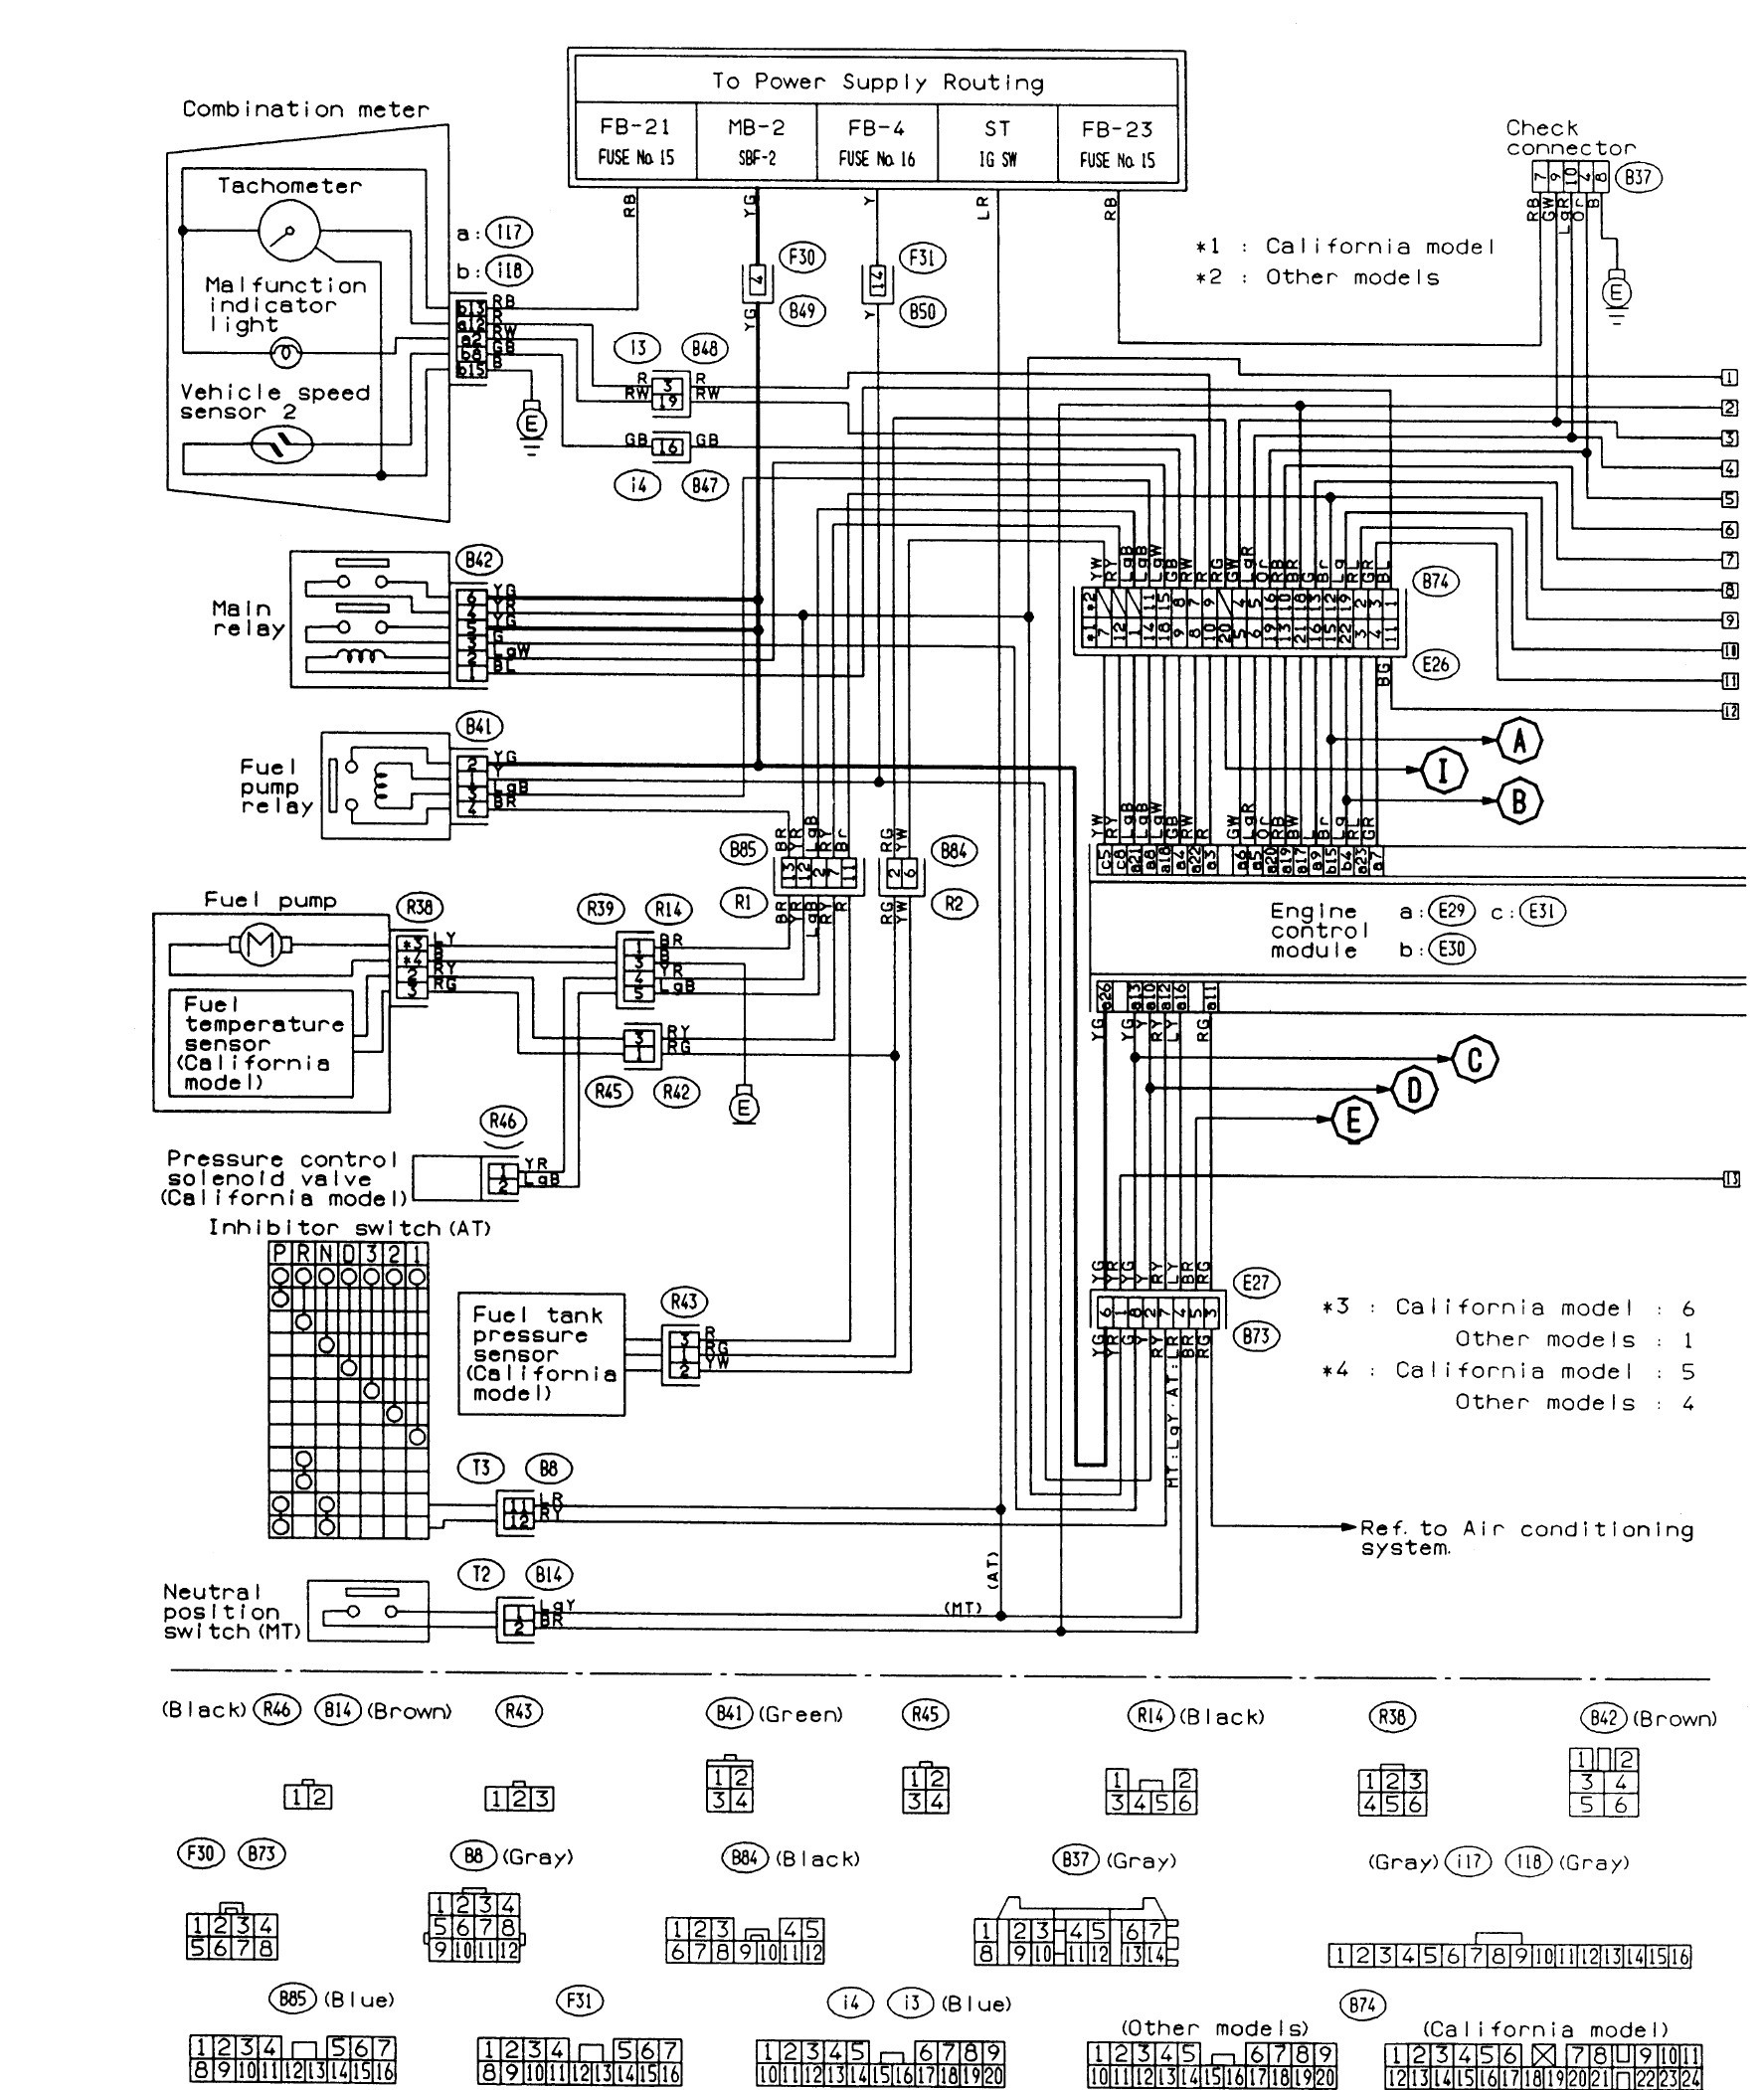 2015 Wrx Engine Diagram Cool Review About 2002 Wrx Engine with Breathtaking Of 2015 Wrx Engine Diagram 2011 Subaru forester Fuse Box Another Blog About Wiring Diagram •